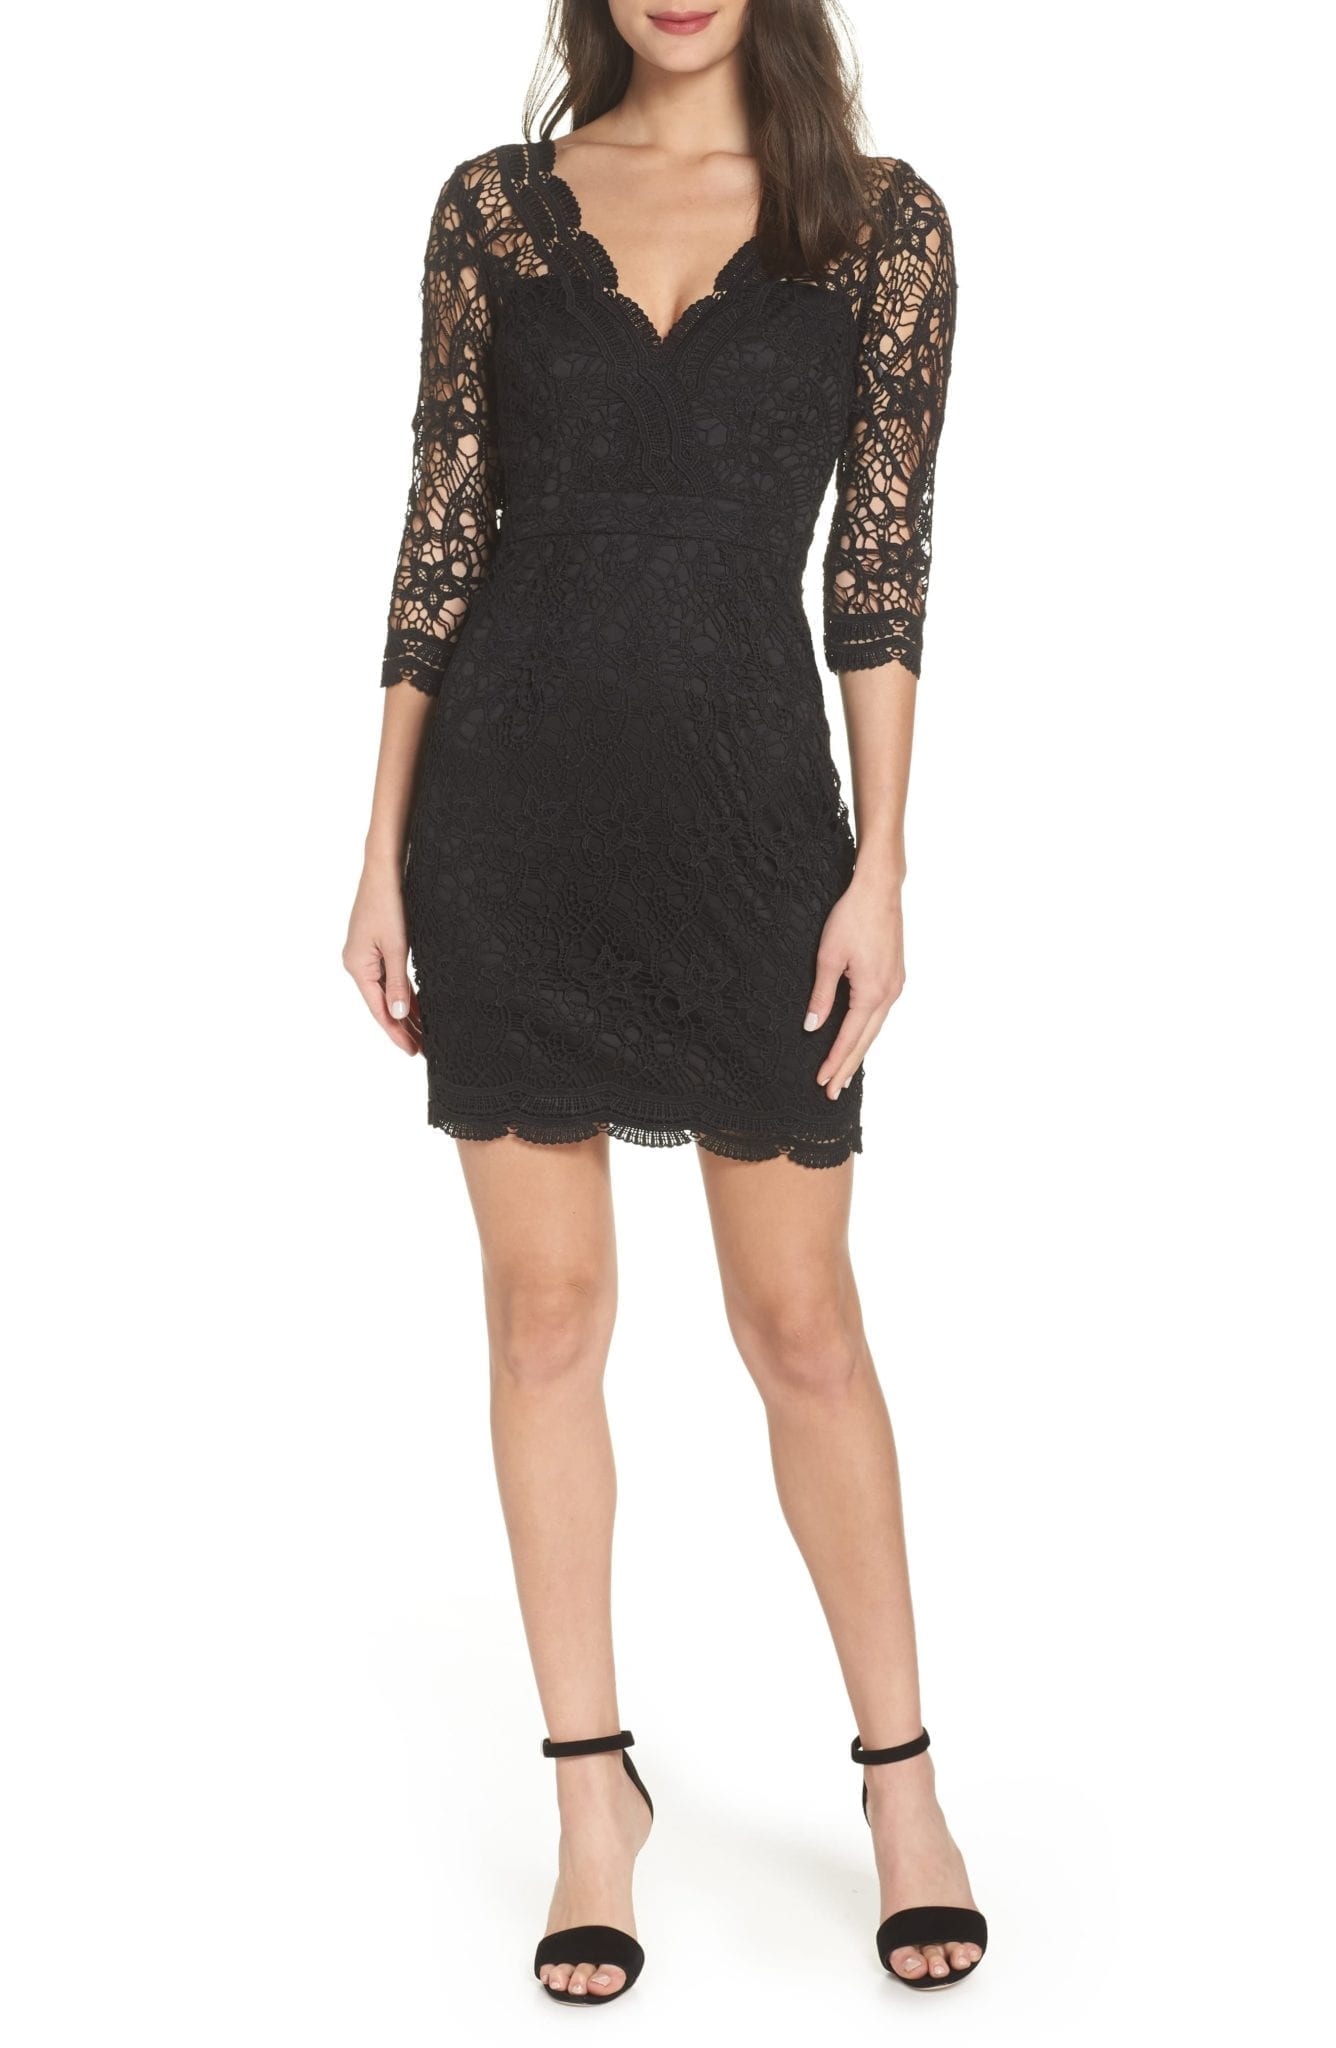 LULUS Lace Cocktail Black Dress